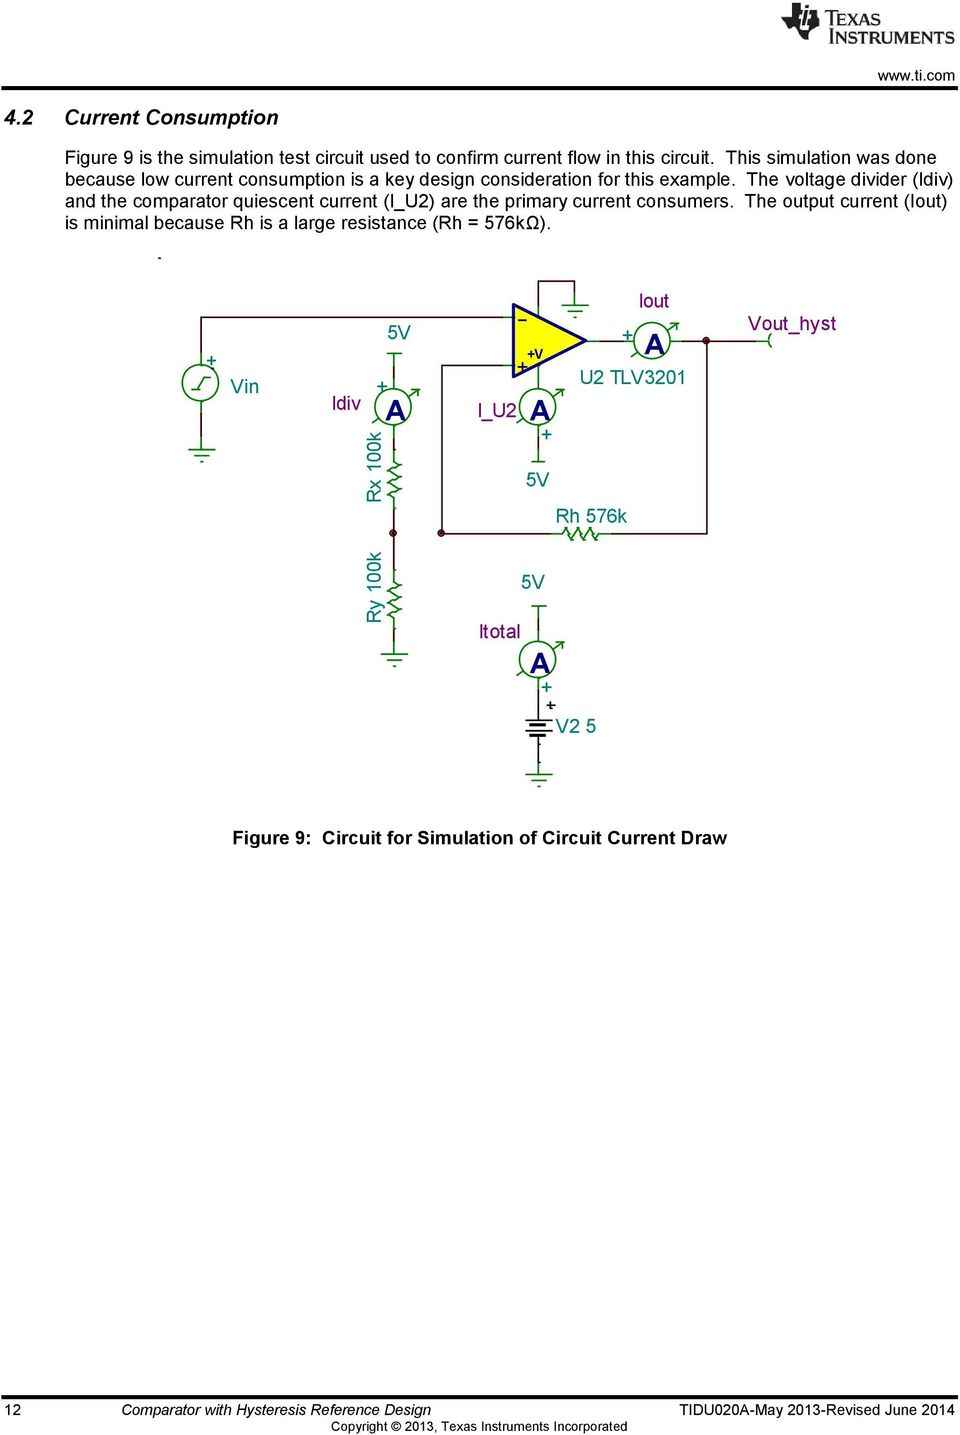 Ti Designs Precision Verified Design Comparator With Hysteresis Voltage Divider Circuit Example The Idiv And Quiescent Current I U2 Are